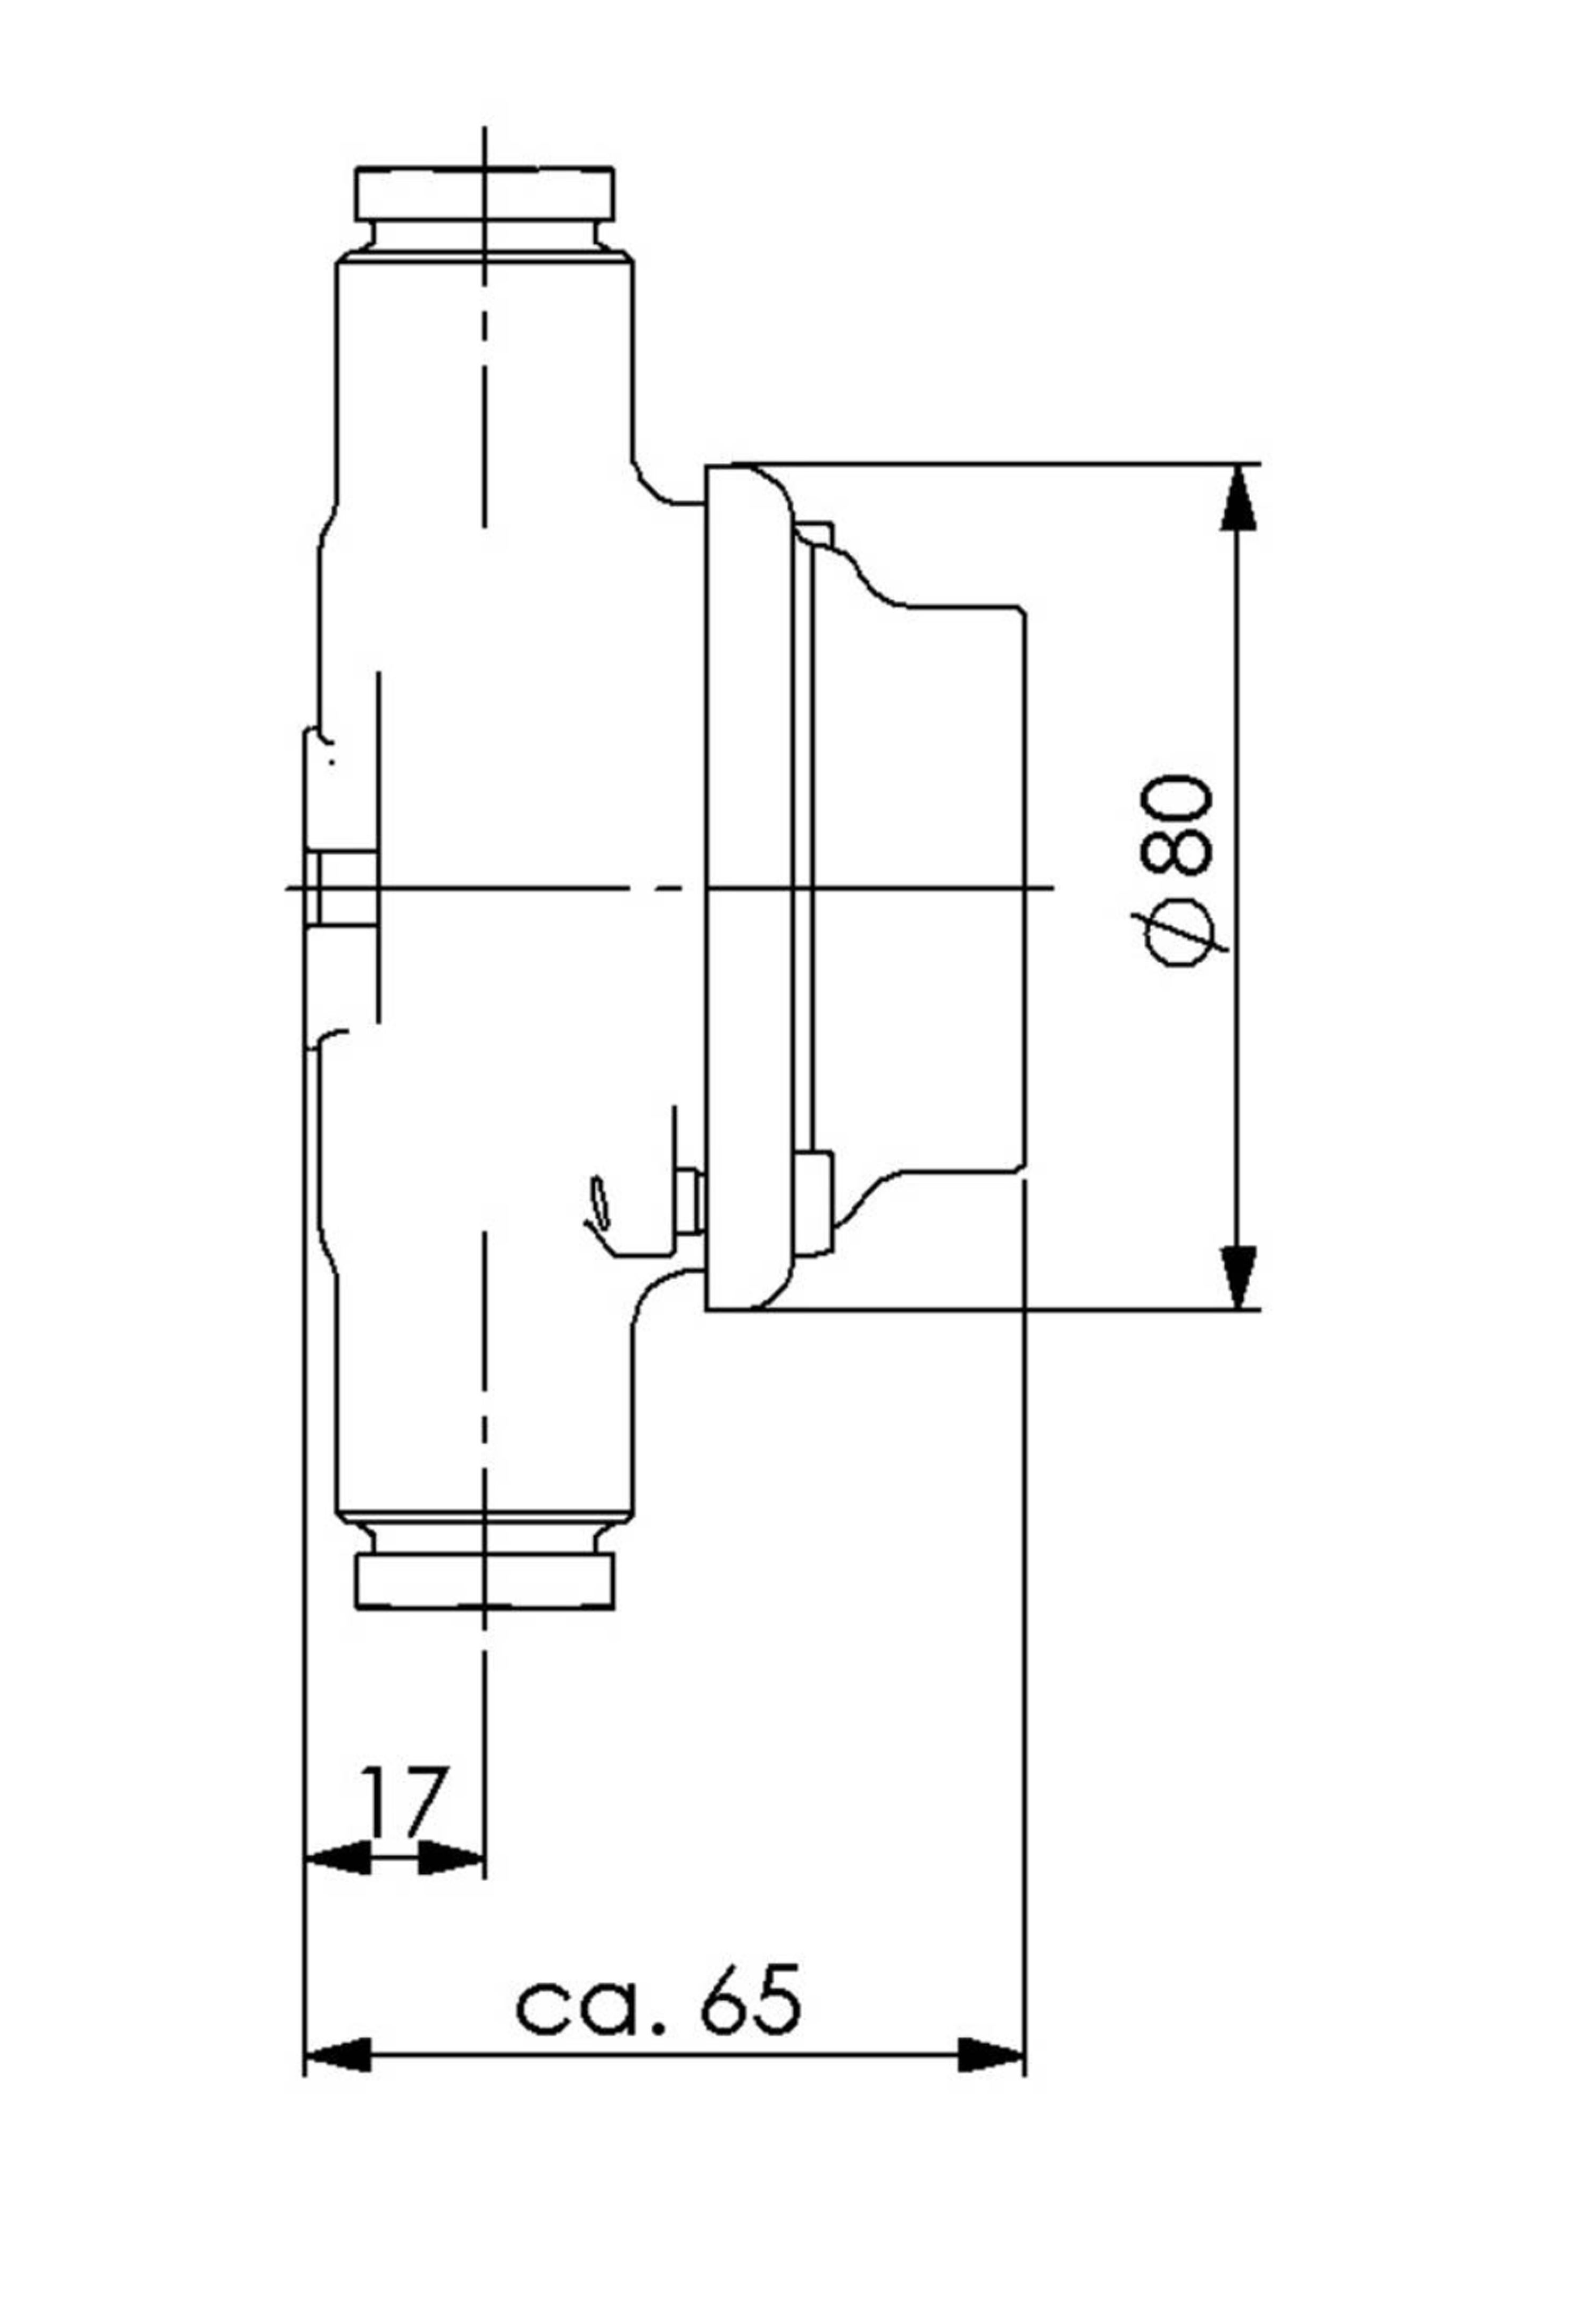 21st Century German Cast Br Industrial Isolator Switch, 3 ... on wall switch diagram, switch starter diagram, switch outlets diagram, rocker switch diagram, switch battery diagram, switch circuit diagram, 3-way switch diagram, network switch diagram, switch lights, relay switch diagram, switch socket diagram, electrical outlets diagram,